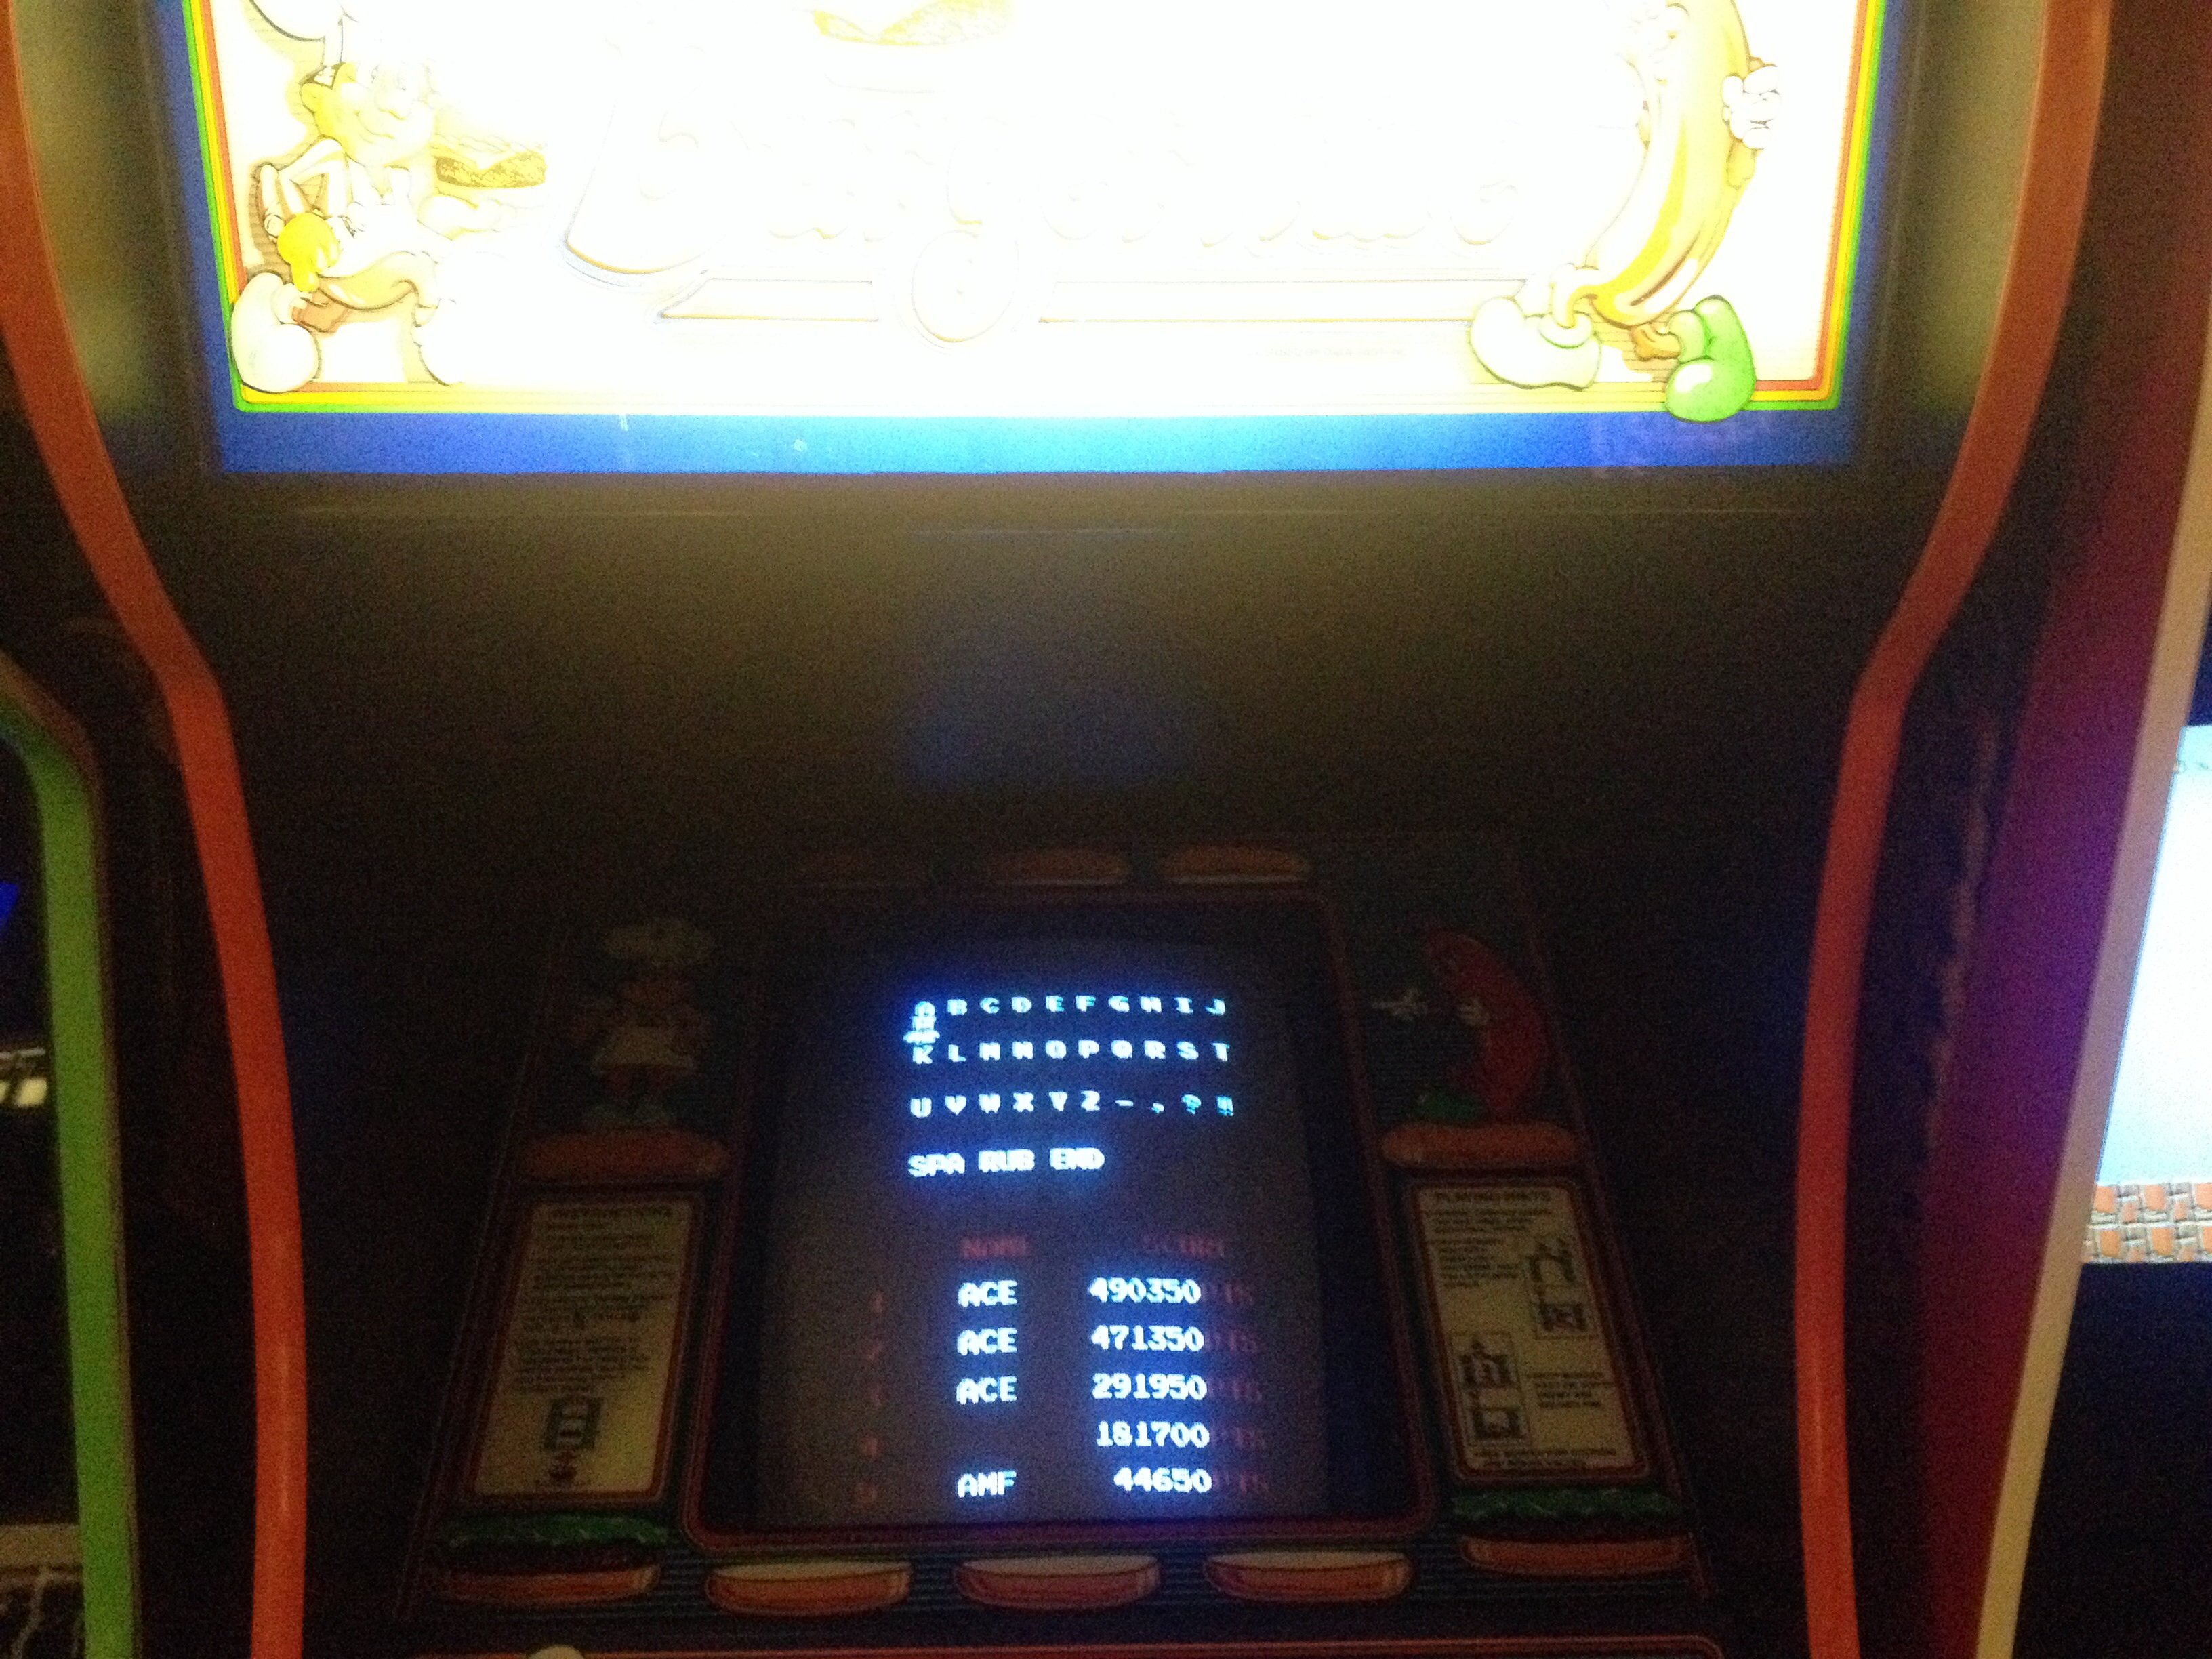 FosterAMF: BurgerTime (Arcade) 44,650 points on 2014-09-04 14:22:06